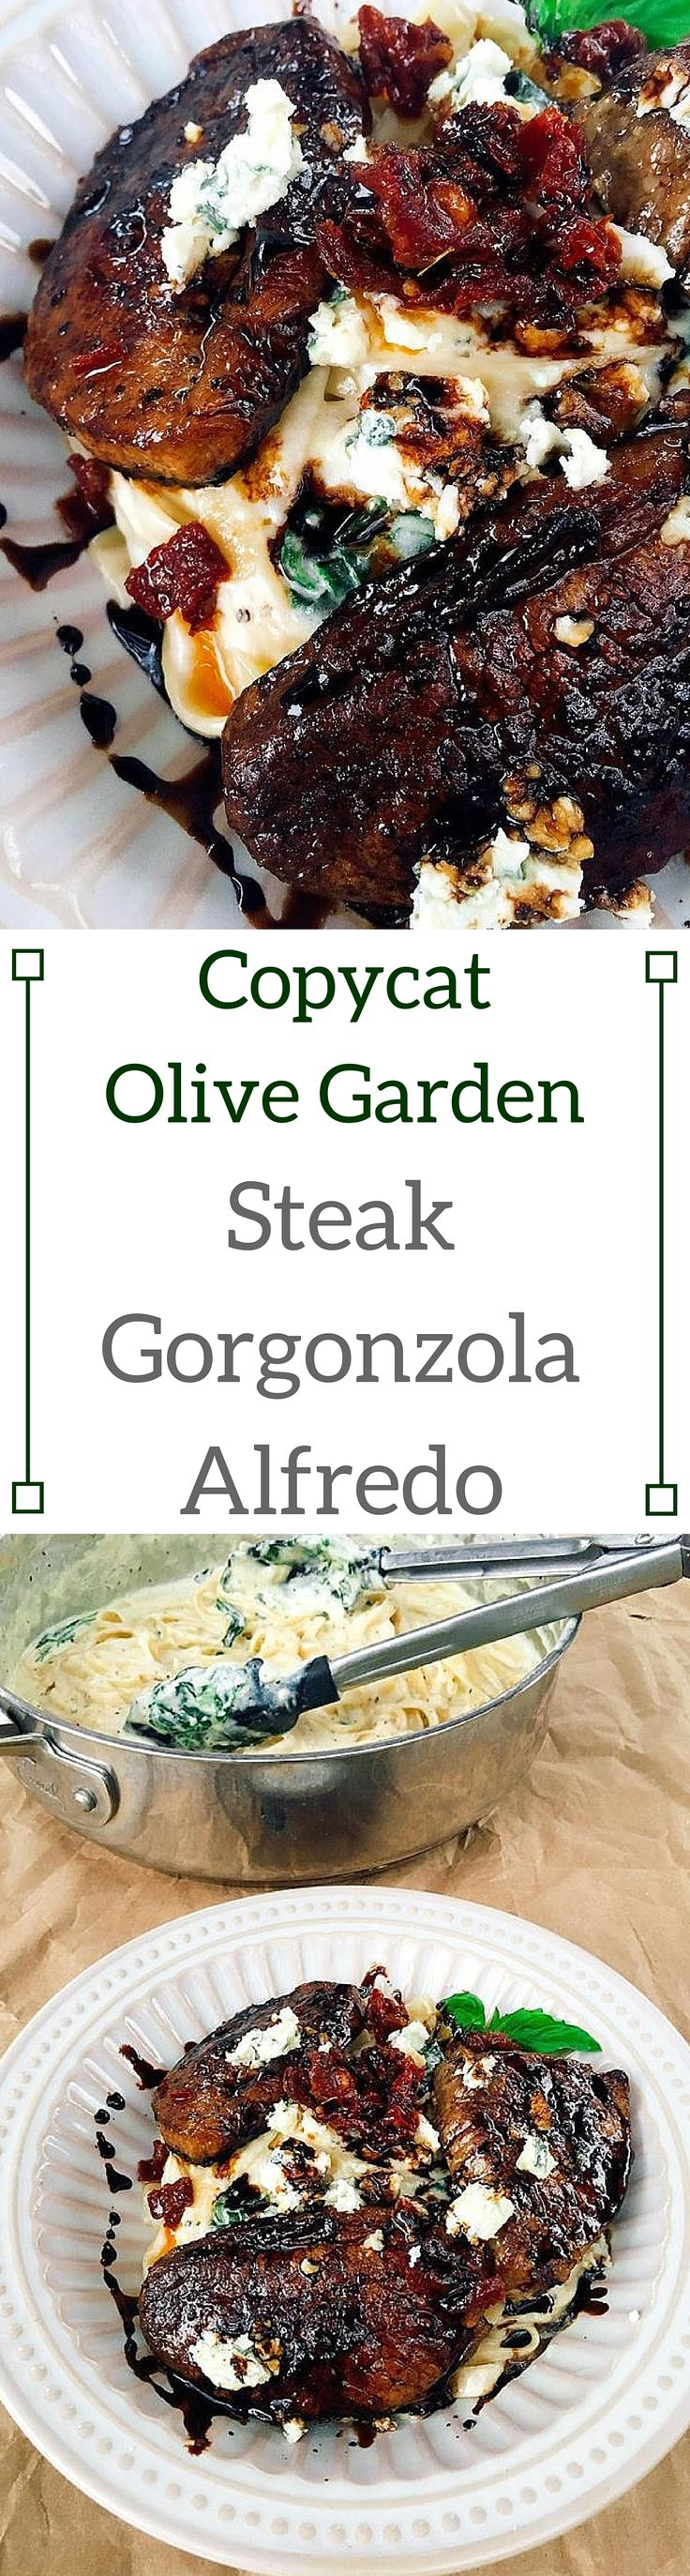 Copycat Steak Gorgonzola Alfredo Recipe Gardens Night Out And I Love